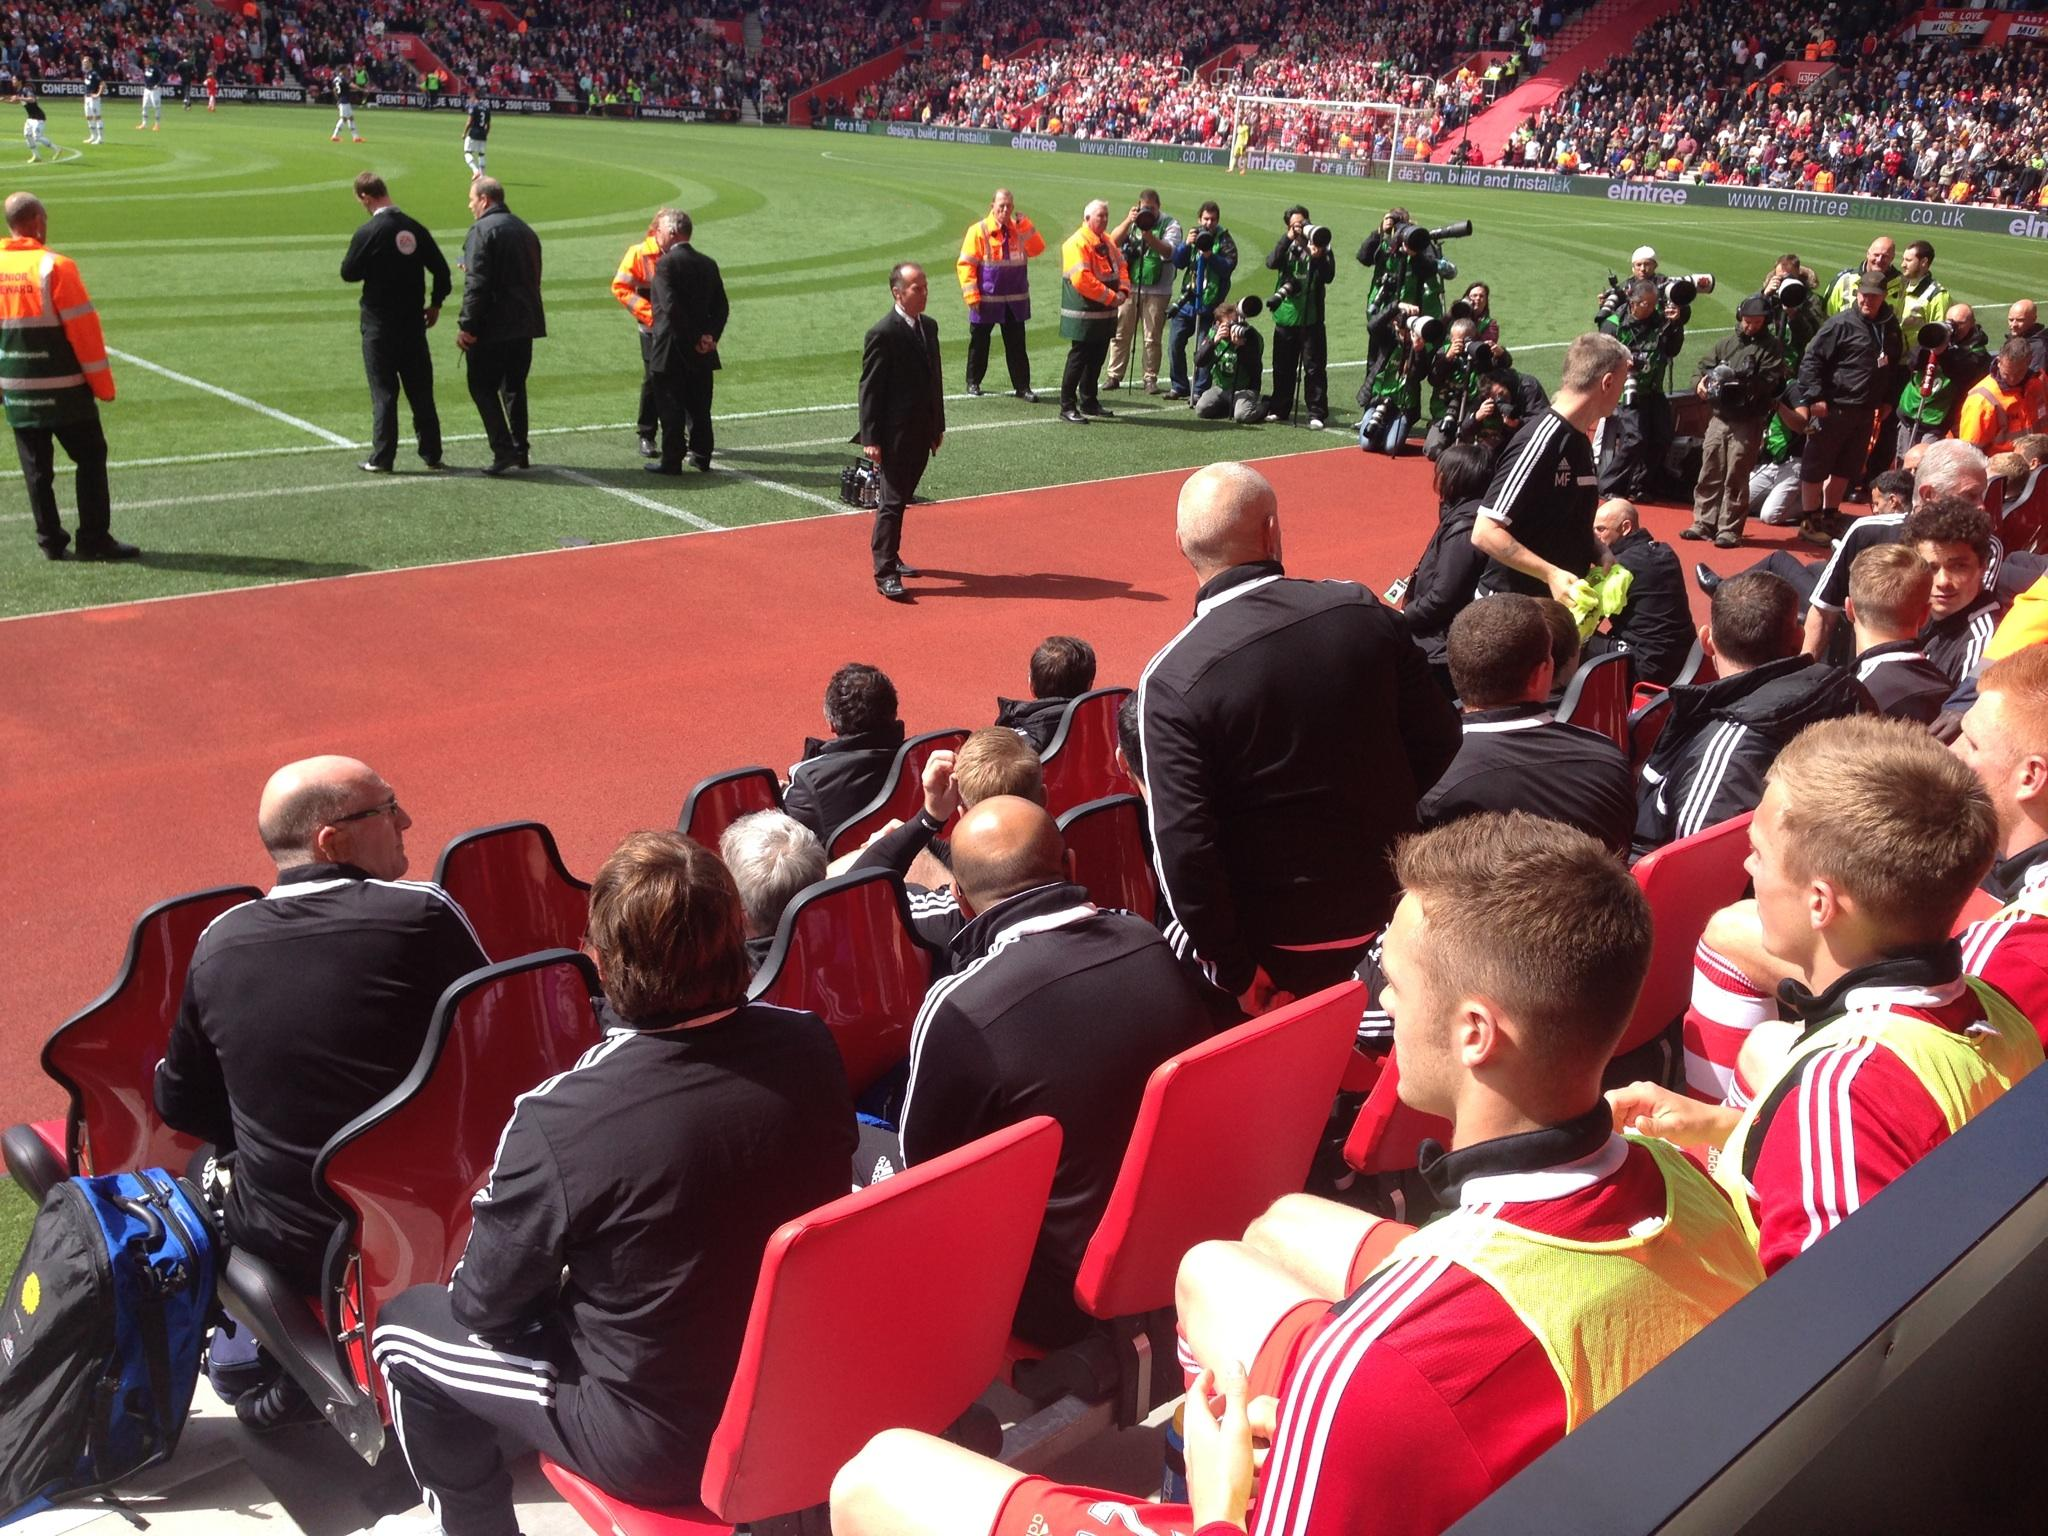 St Mary's Stadium Section 7 Row L